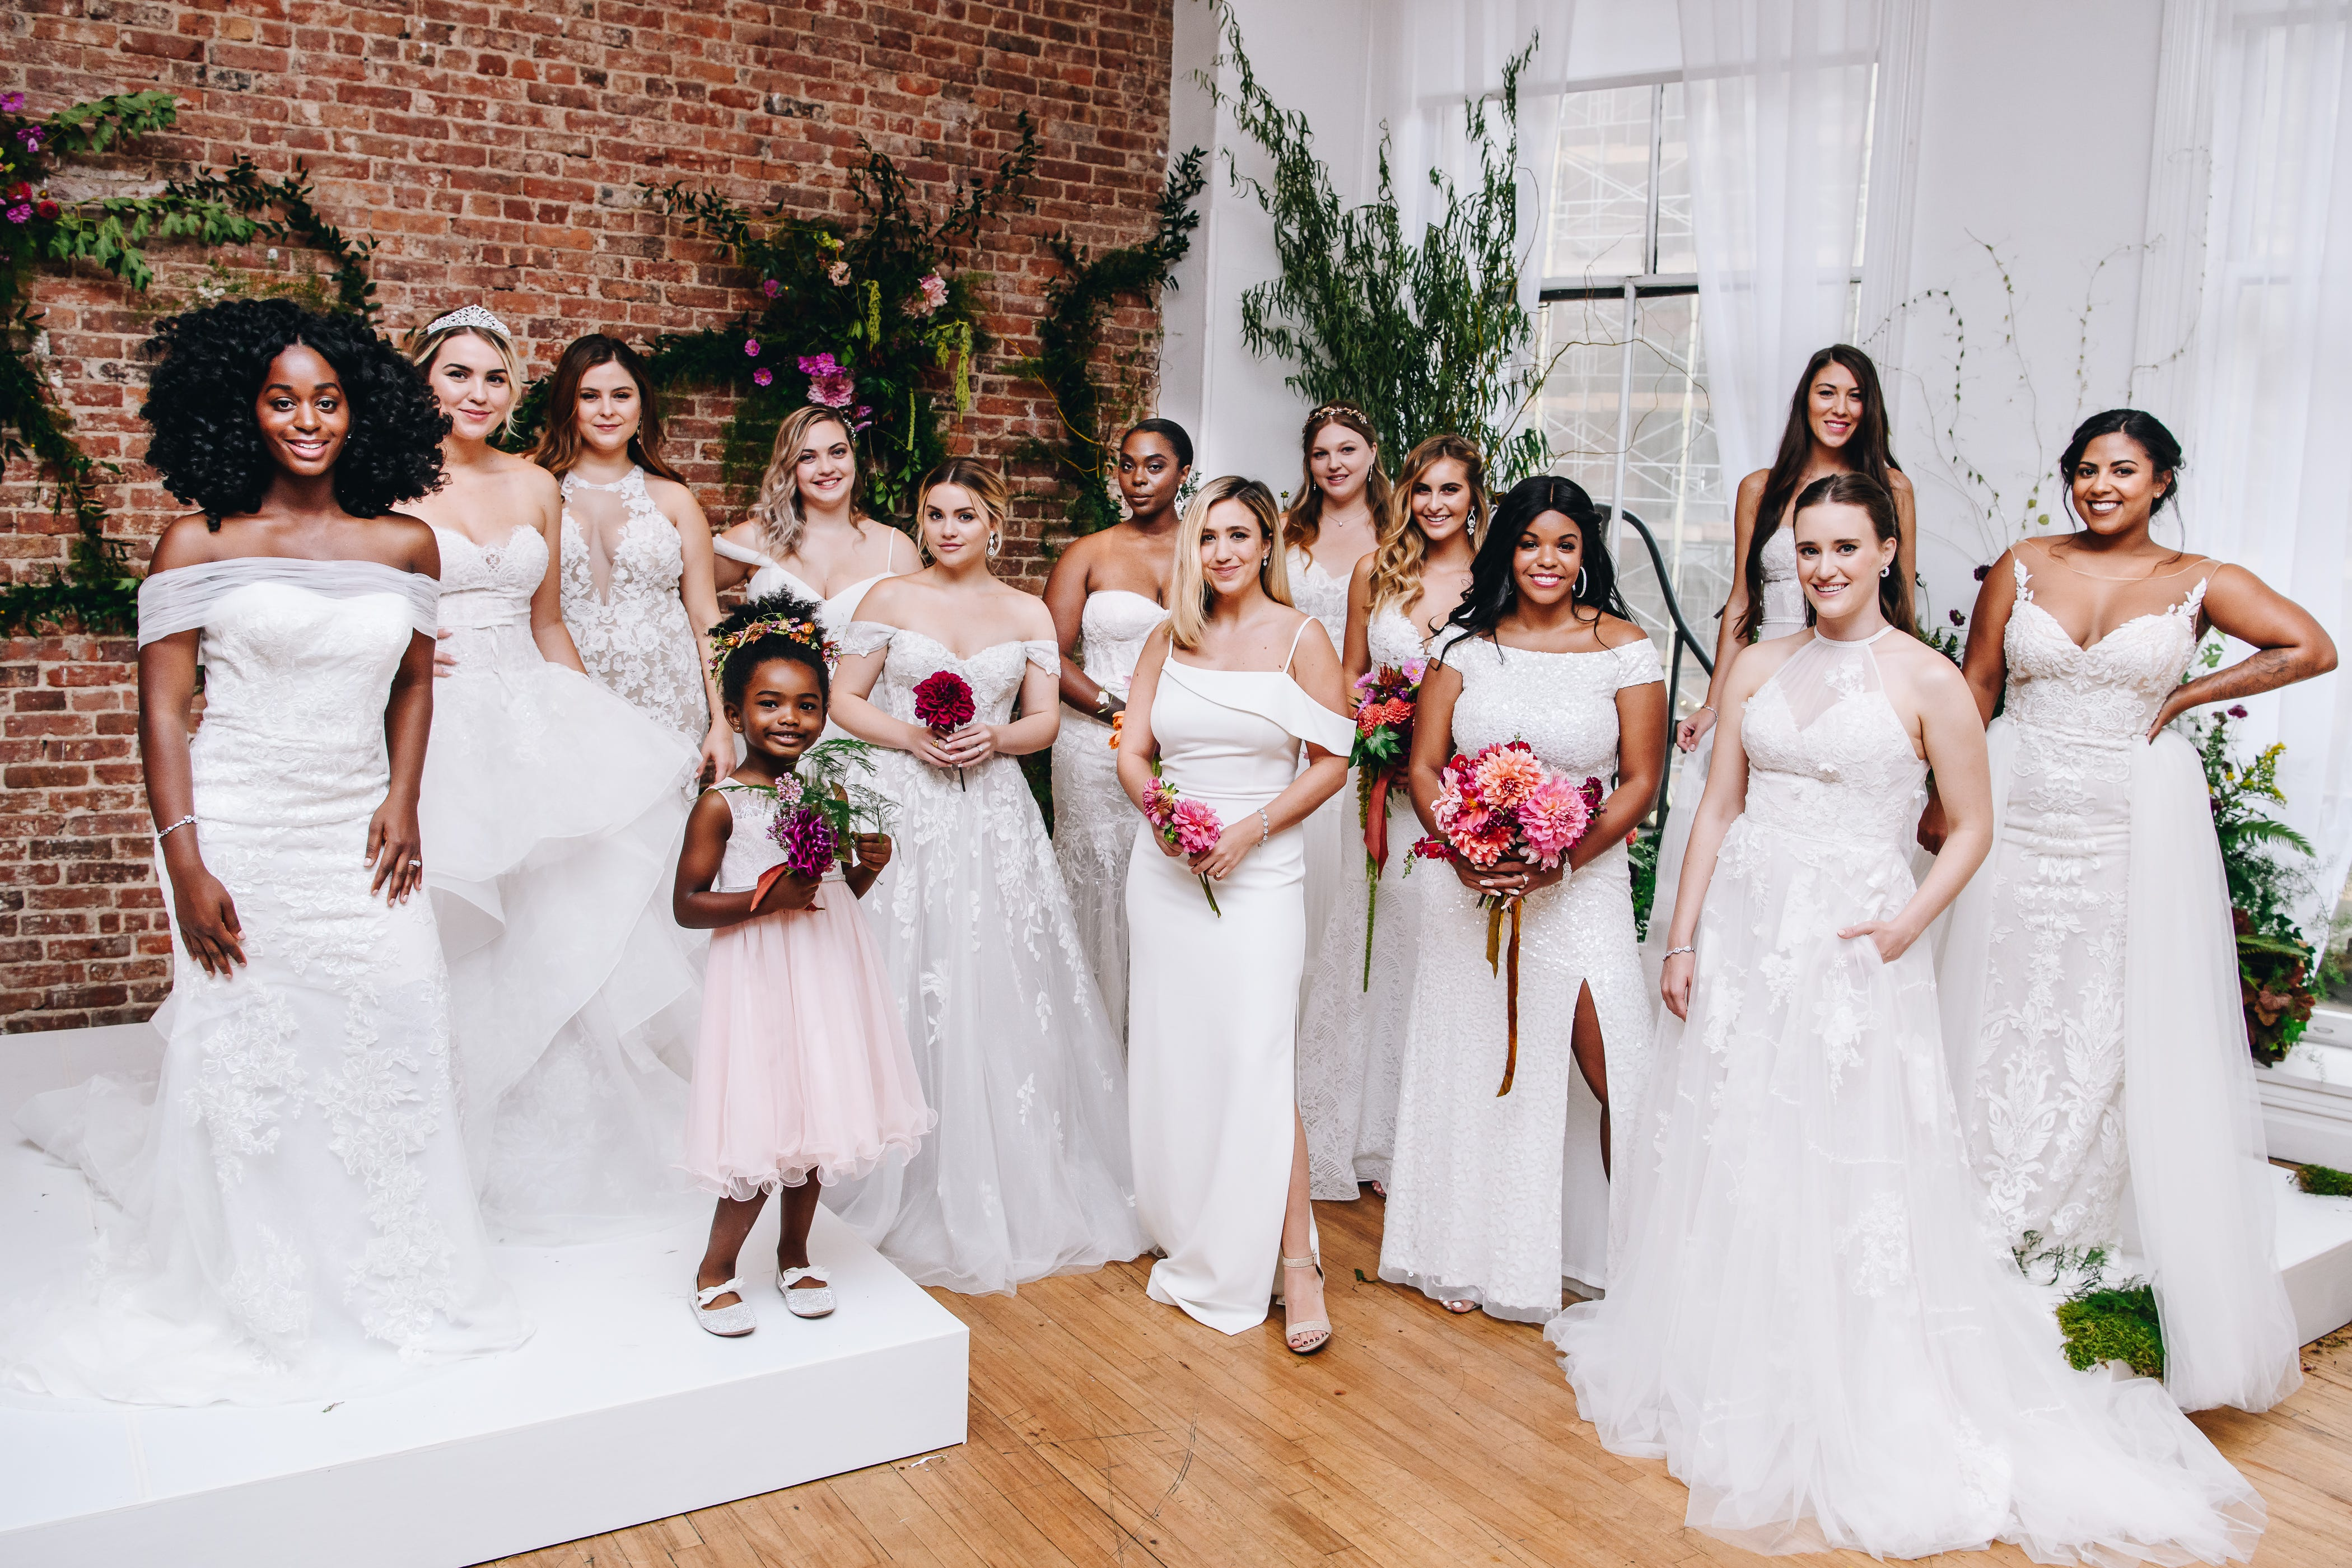 Wedding dress chain David's Bridal wants to remake itself after bankruptcy with 'real brides,' easier returns